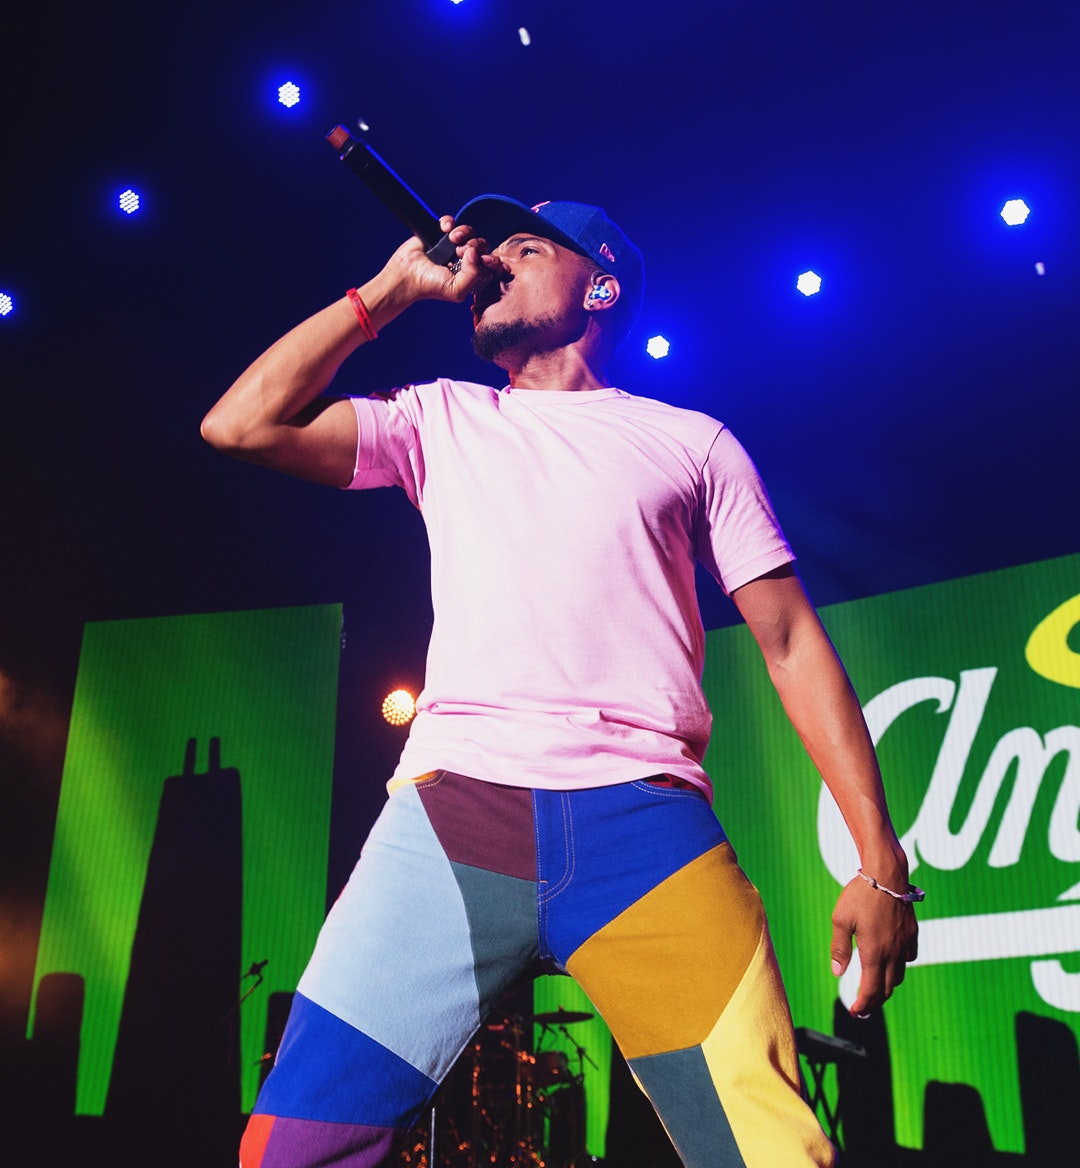 chance the rapper special olympics 2018 mobile